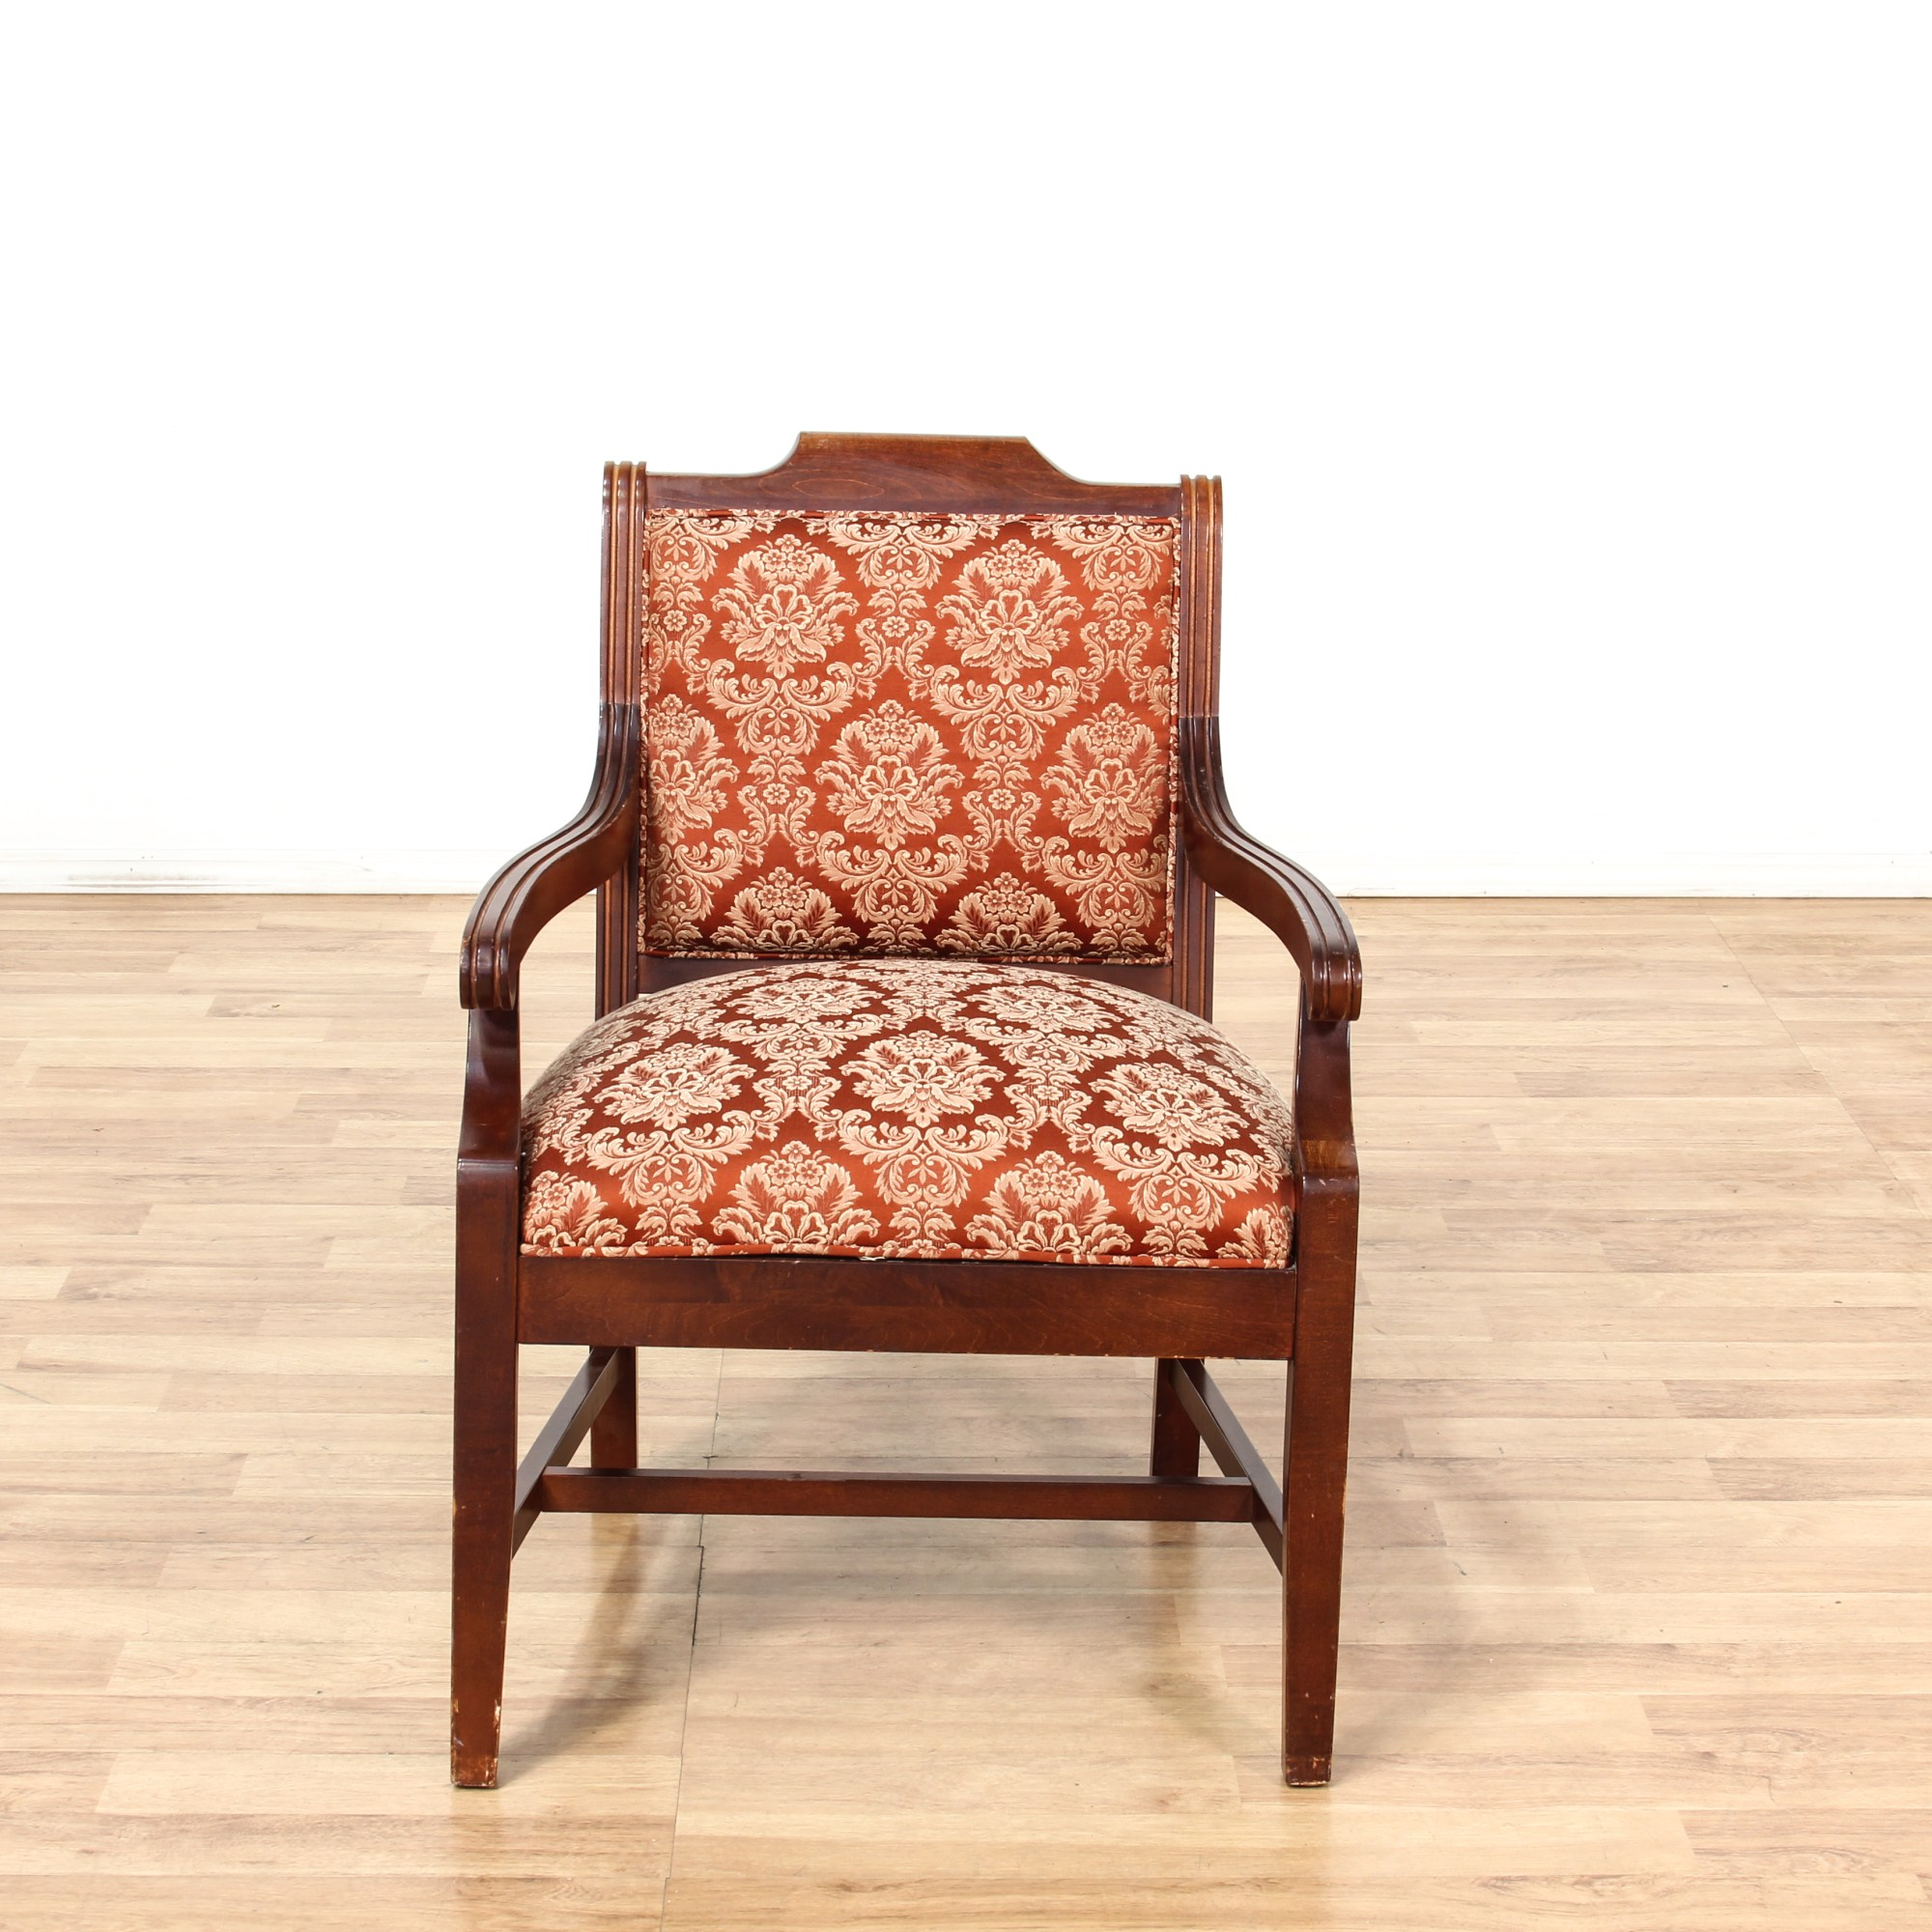 Mahogany Stained Floral Upholstered Arm Chair Loveseat